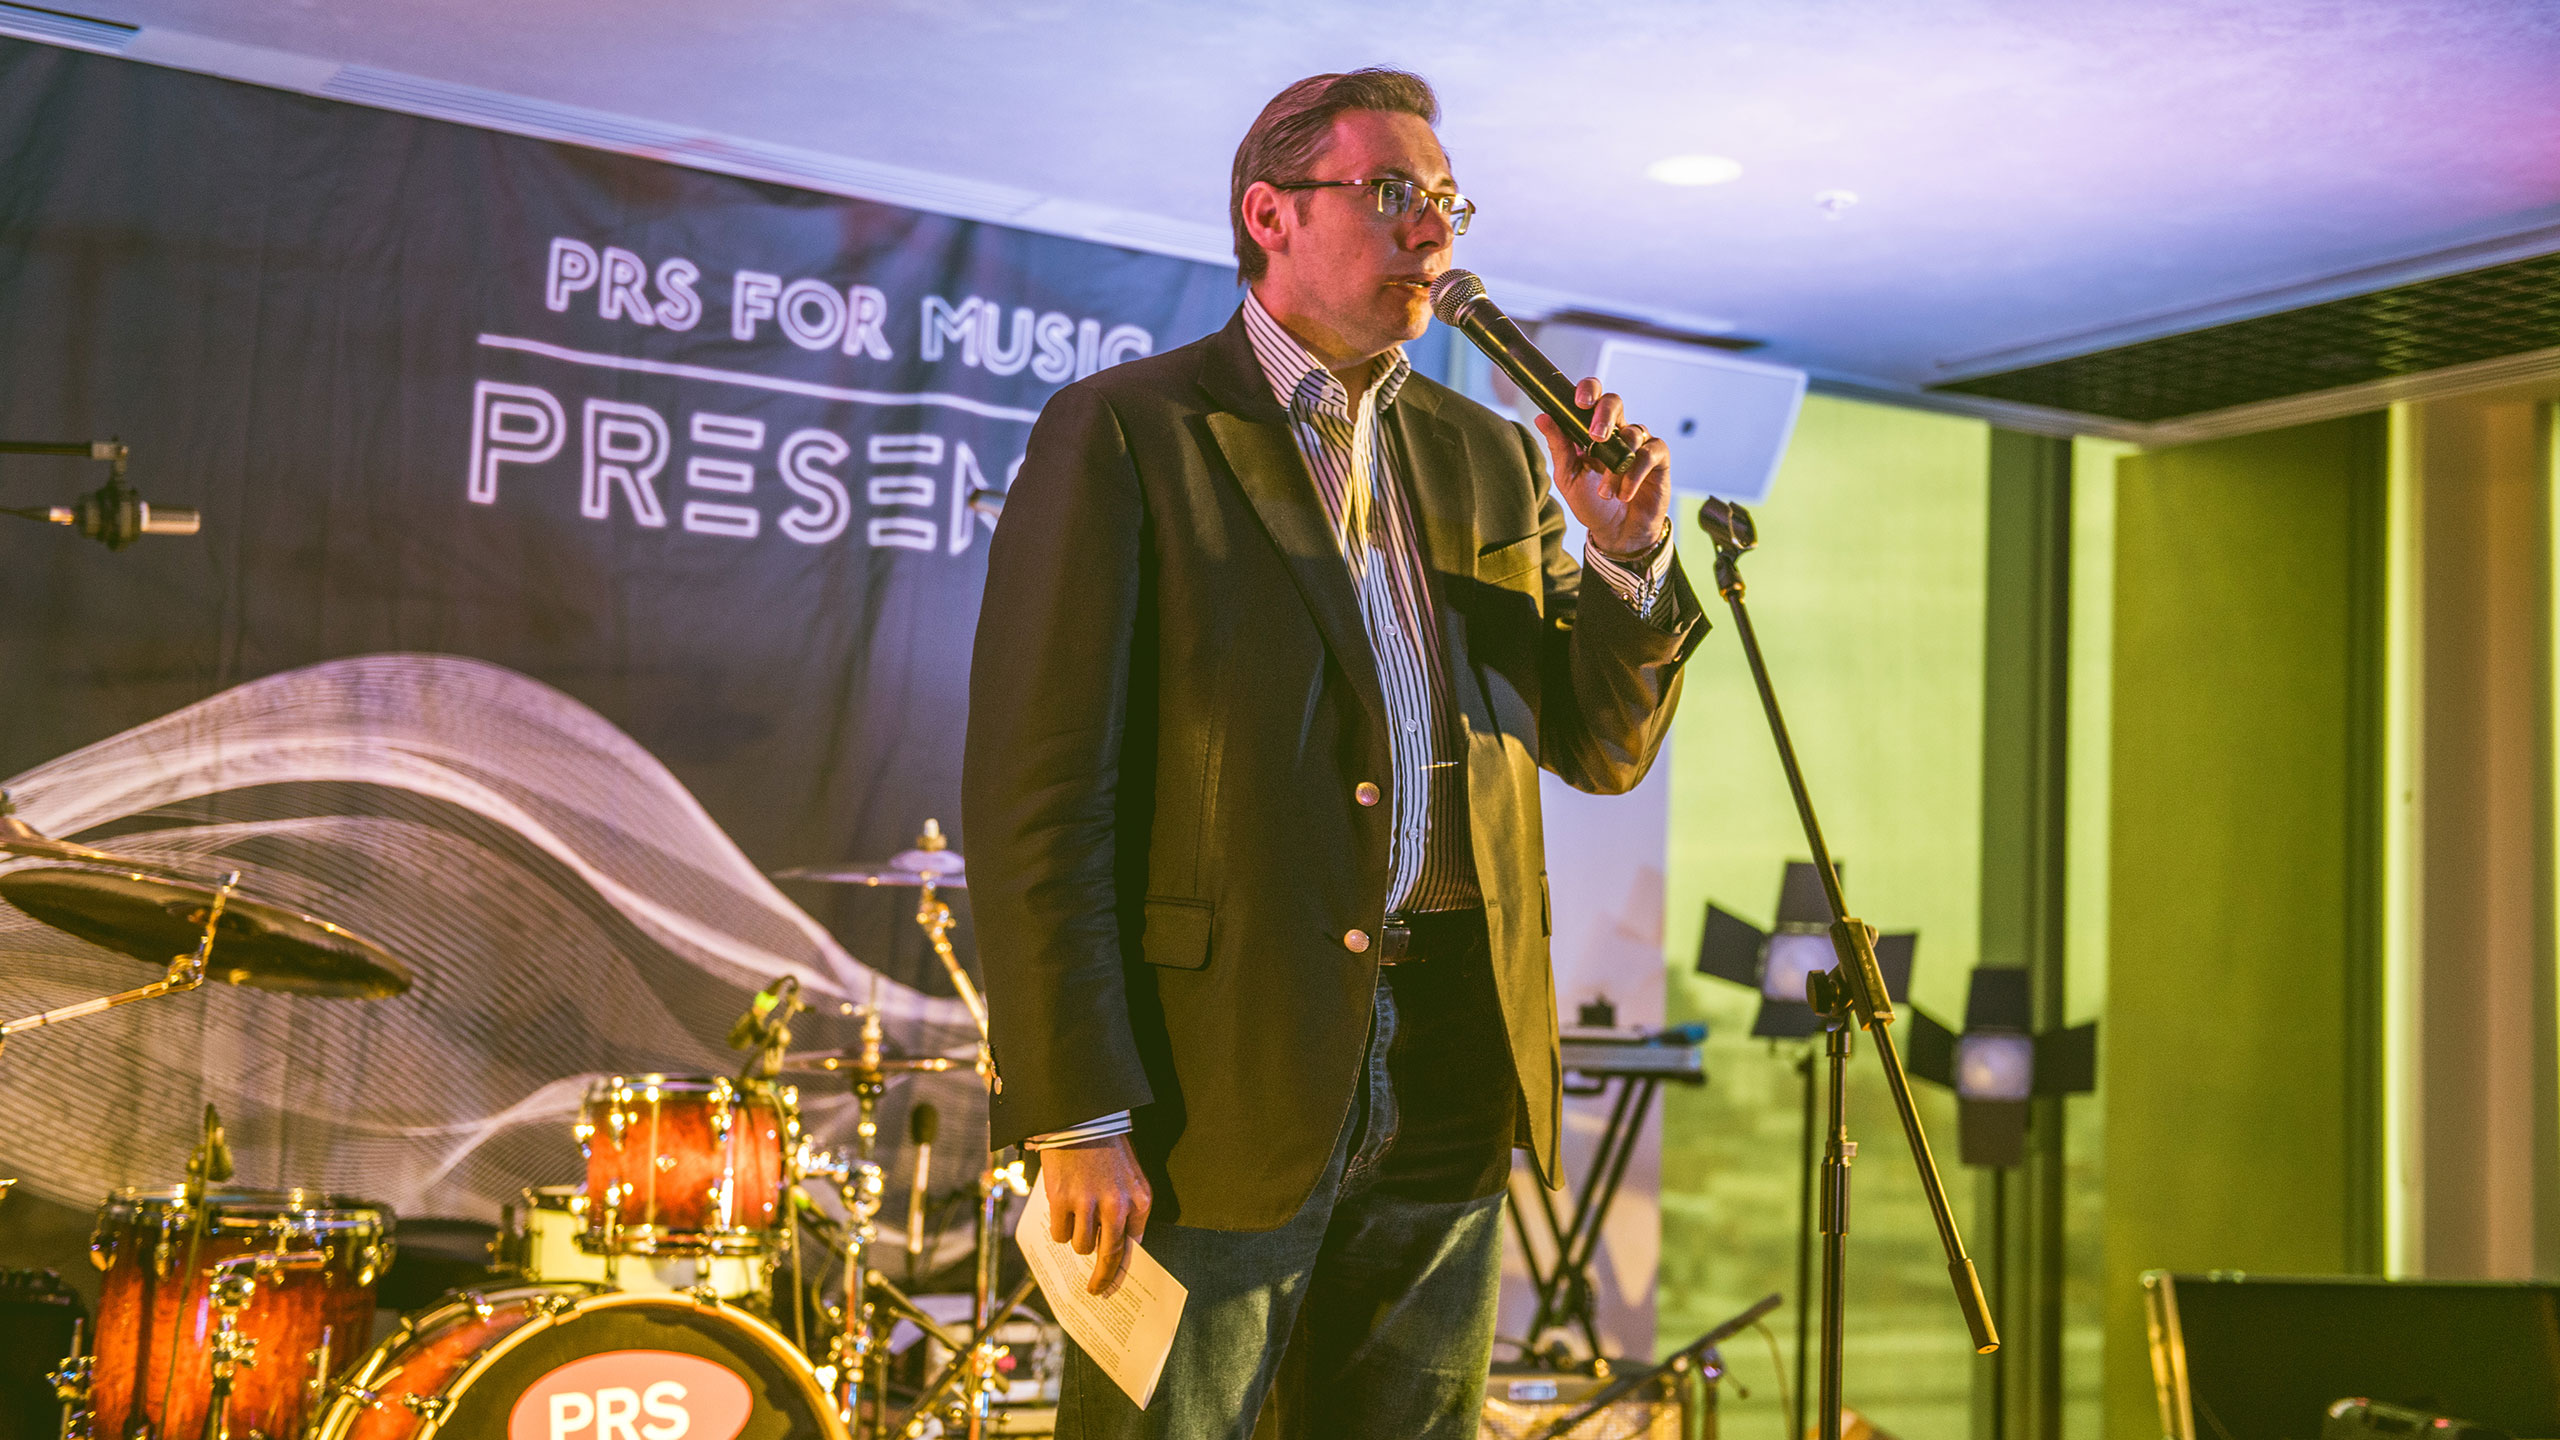 Paul Clements introducing the performers at a PRS Presents gig